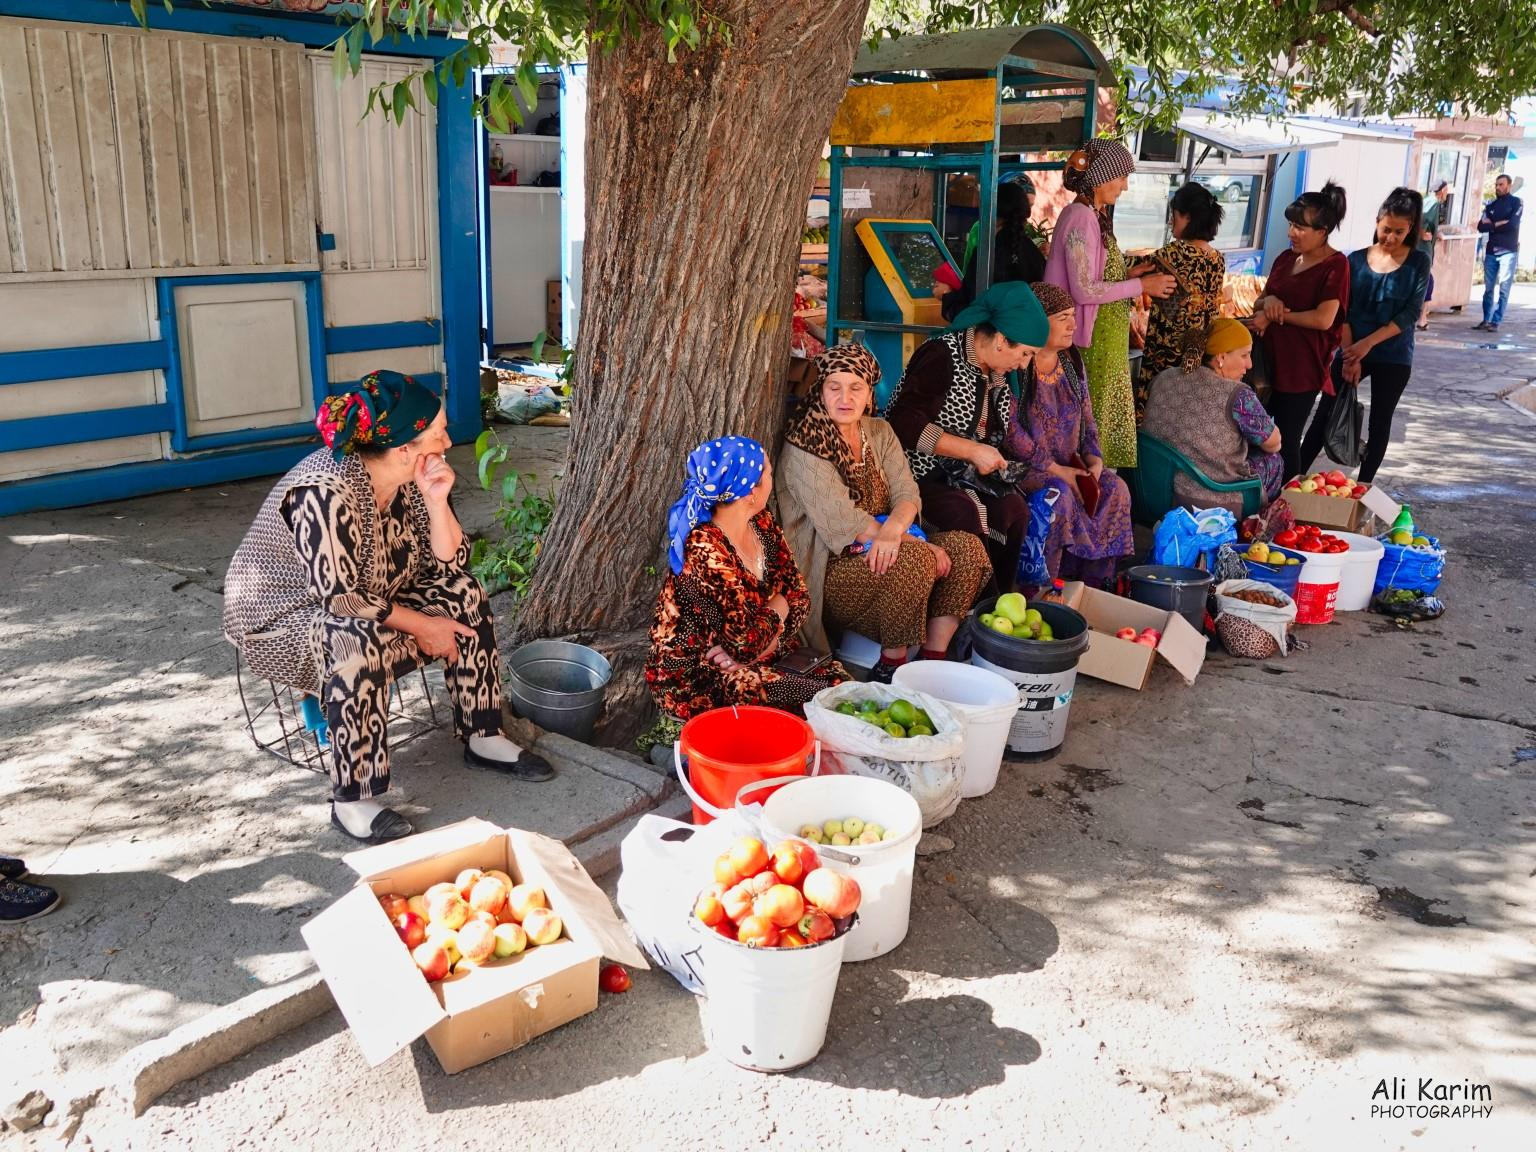 More Khorog, Tajikistan Ladies selling local fresh produce at the market